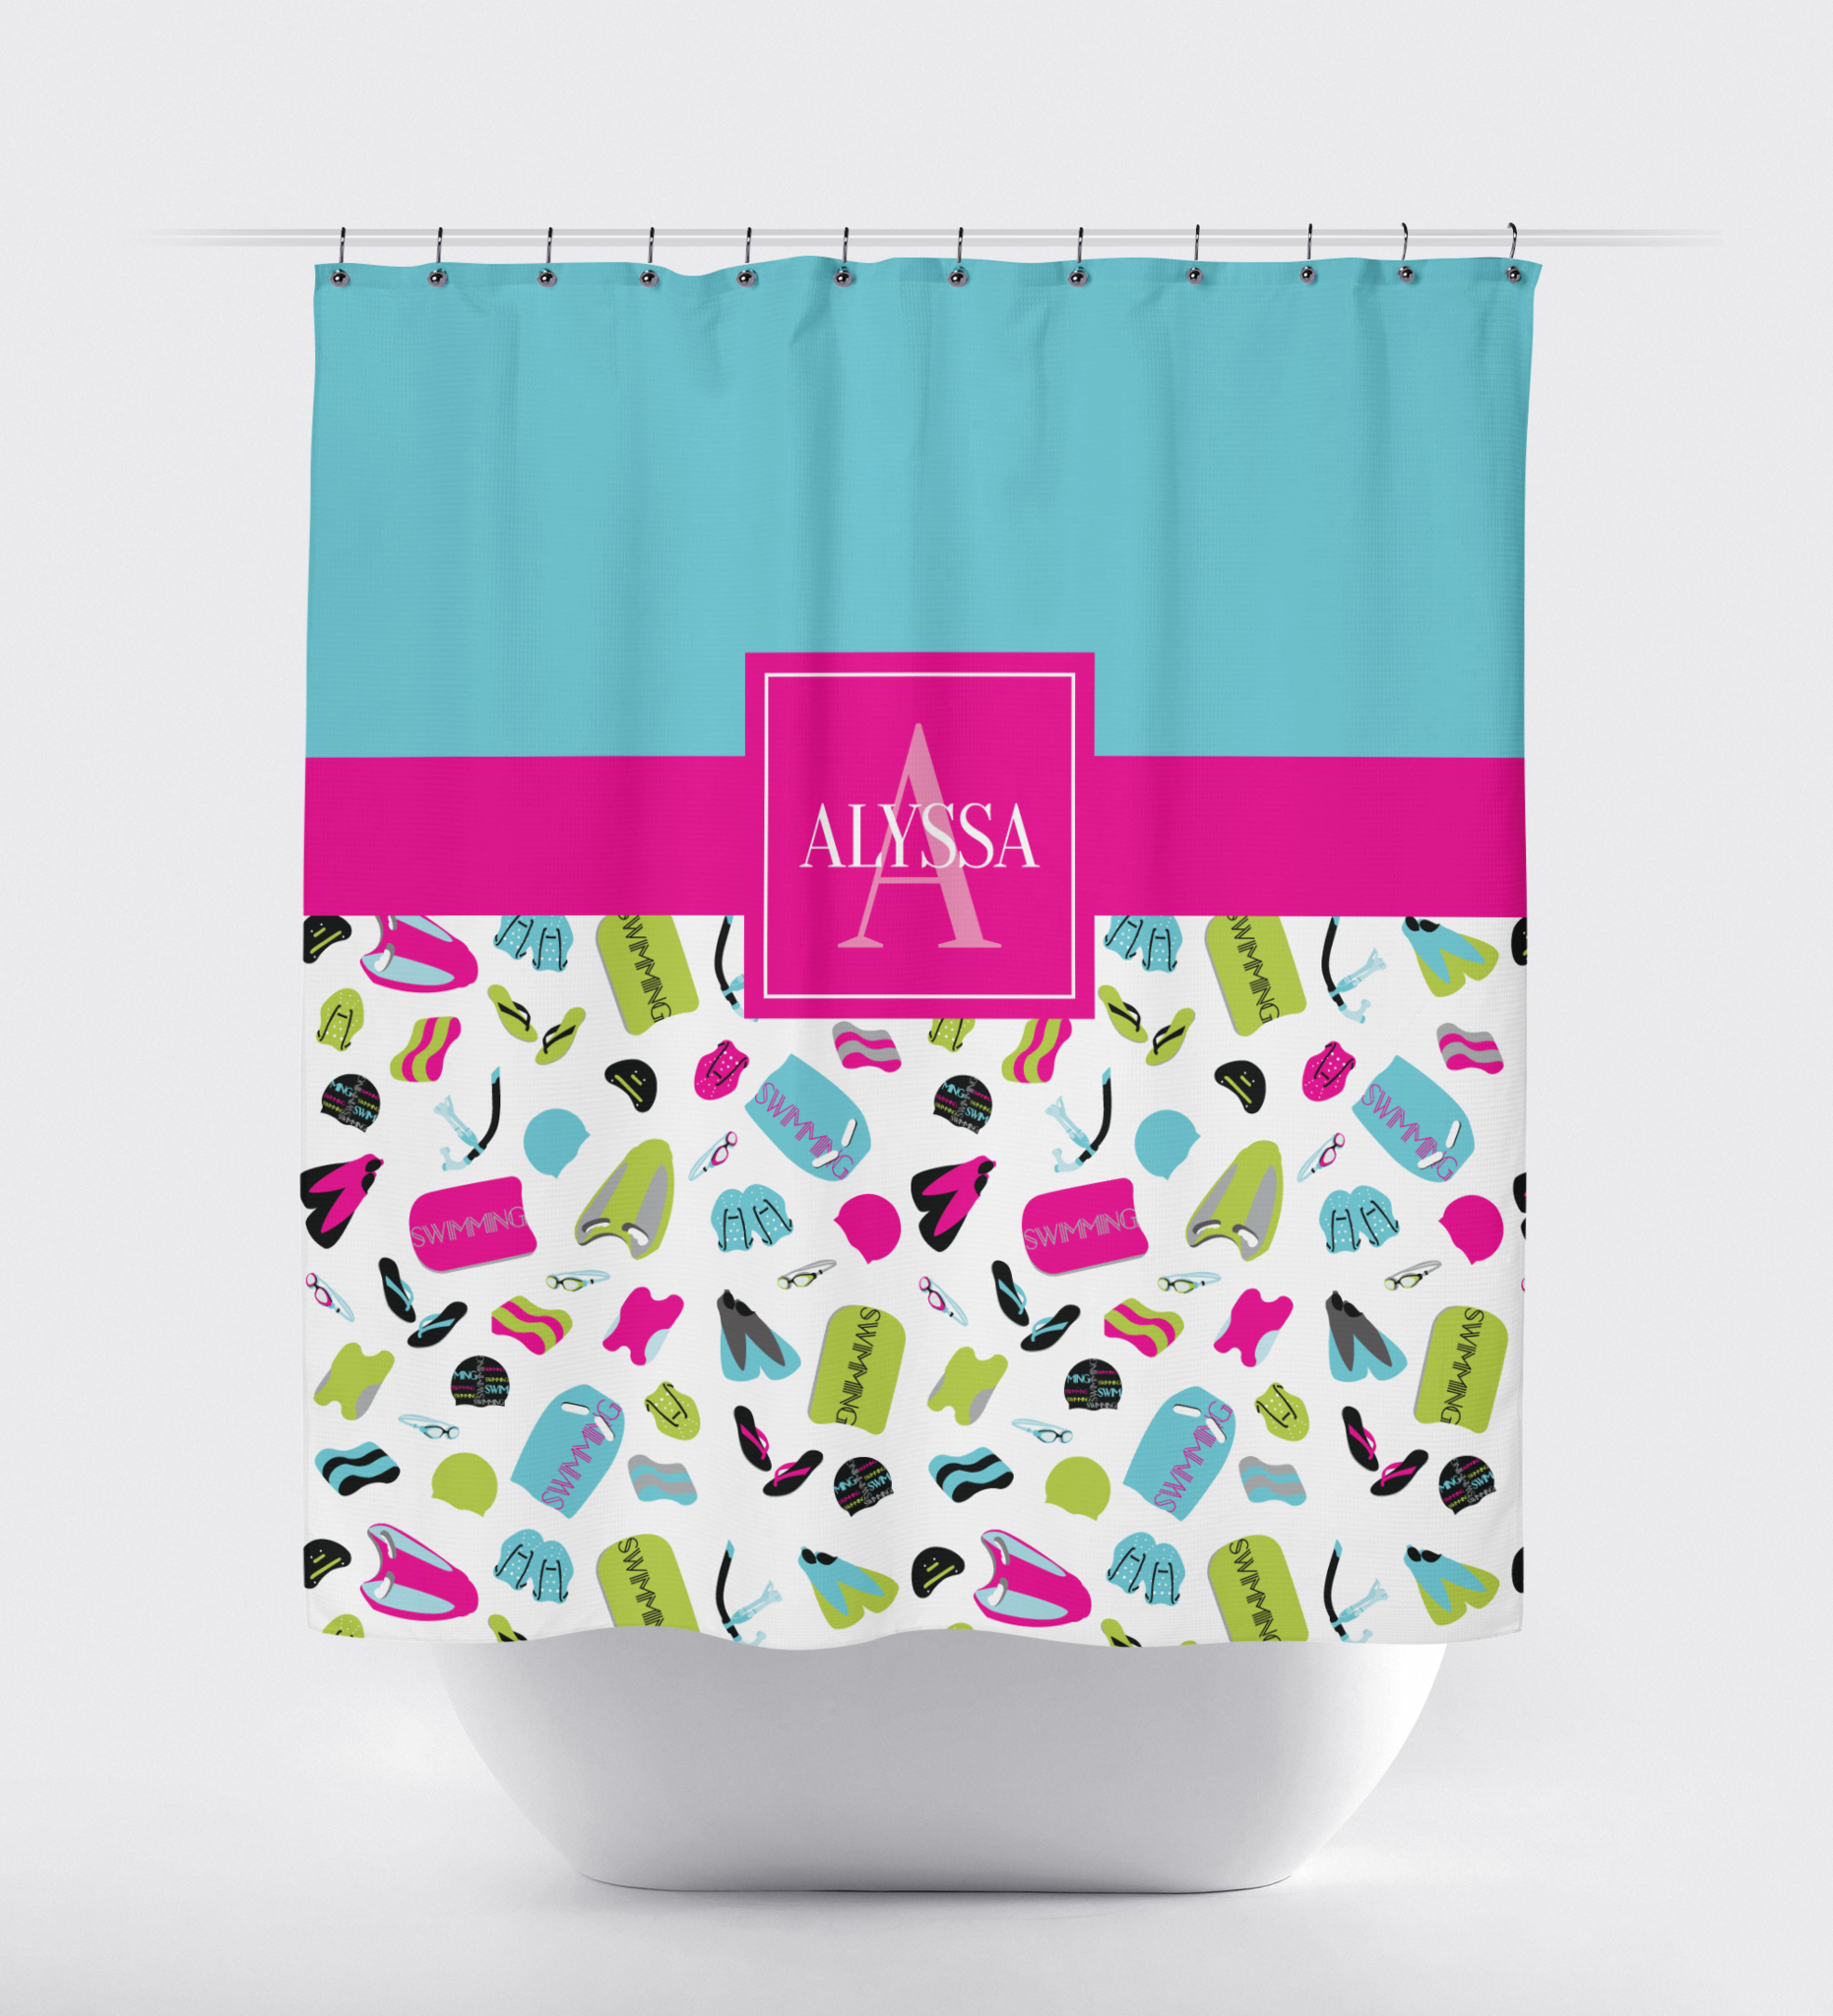 Swimming Themed Shower Curtain With Swimmer S Name Hot Pink